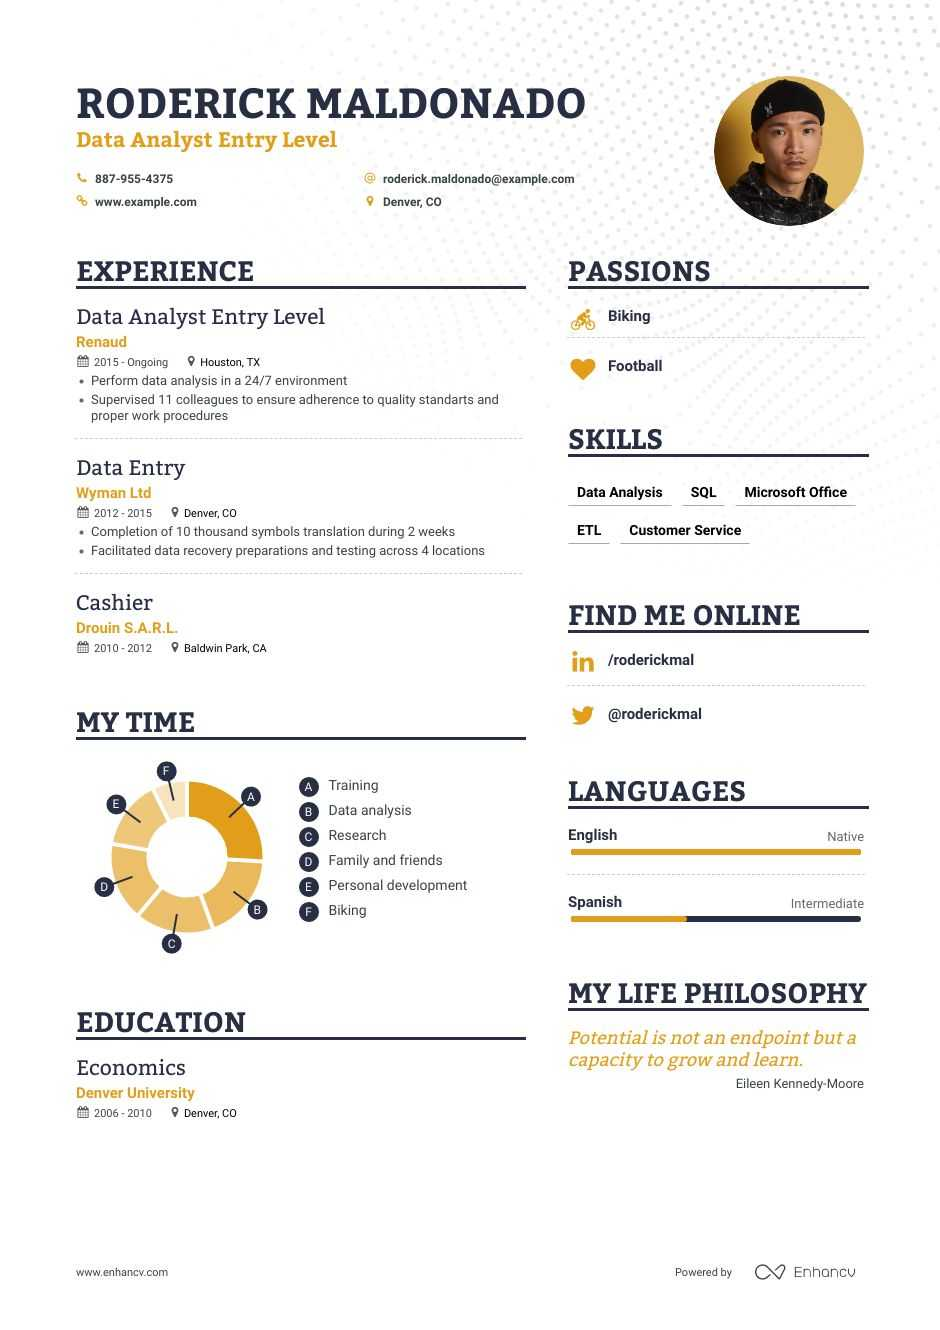 data analyst entry level resume examples inside to tips enhancv skills warehouse template Resume Data Analyst Skills Resume